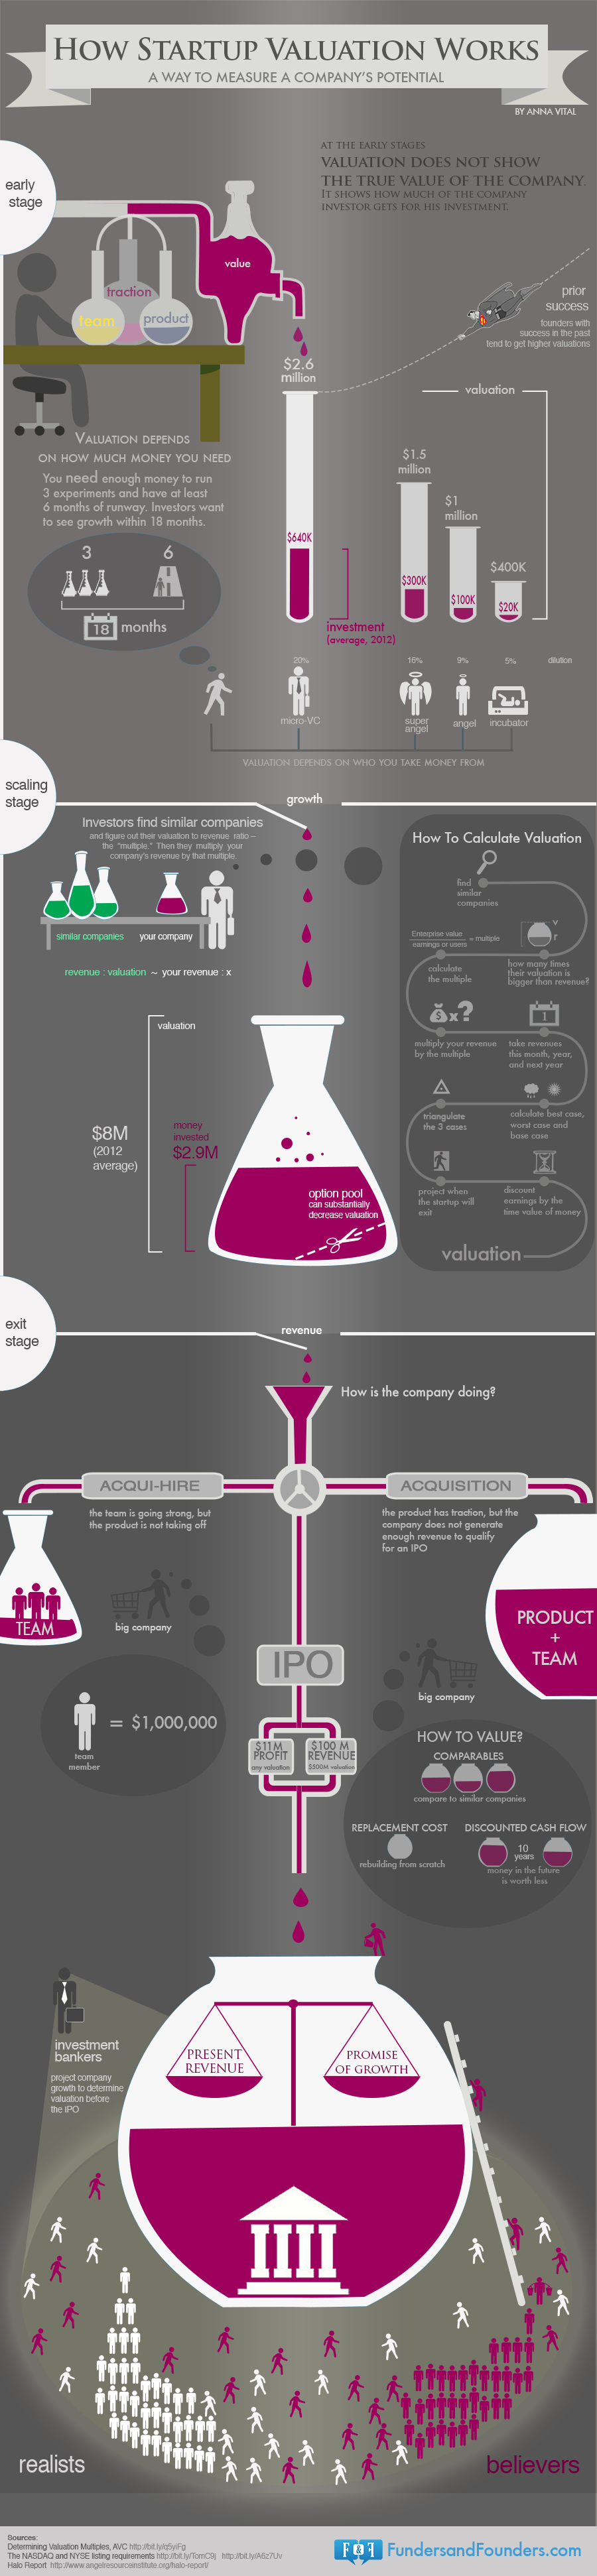 Startup valuation infographic by Funders and Founders